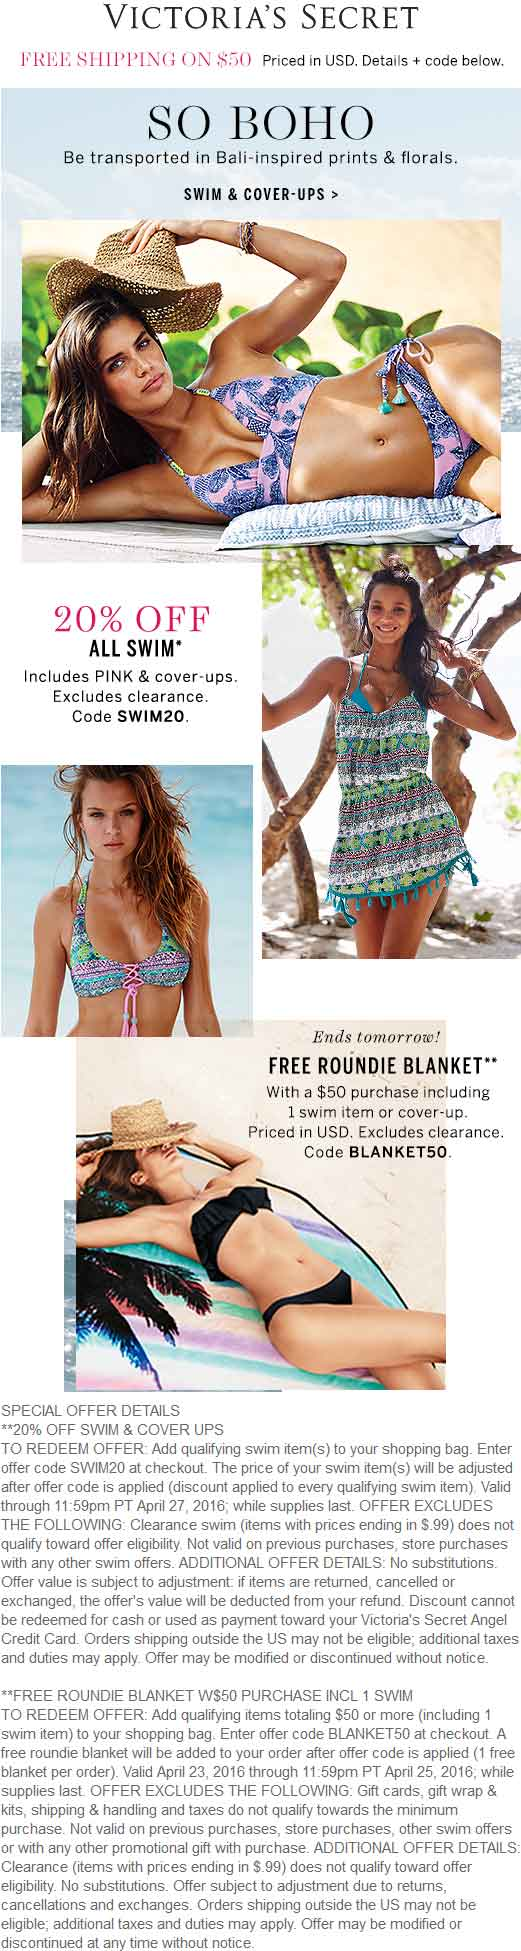 Victorias Secret Coupon December 2018 Free roundie blanket with $50 spent & 20% off swim today at Victorias Secret, or online via promo code BLANKET50